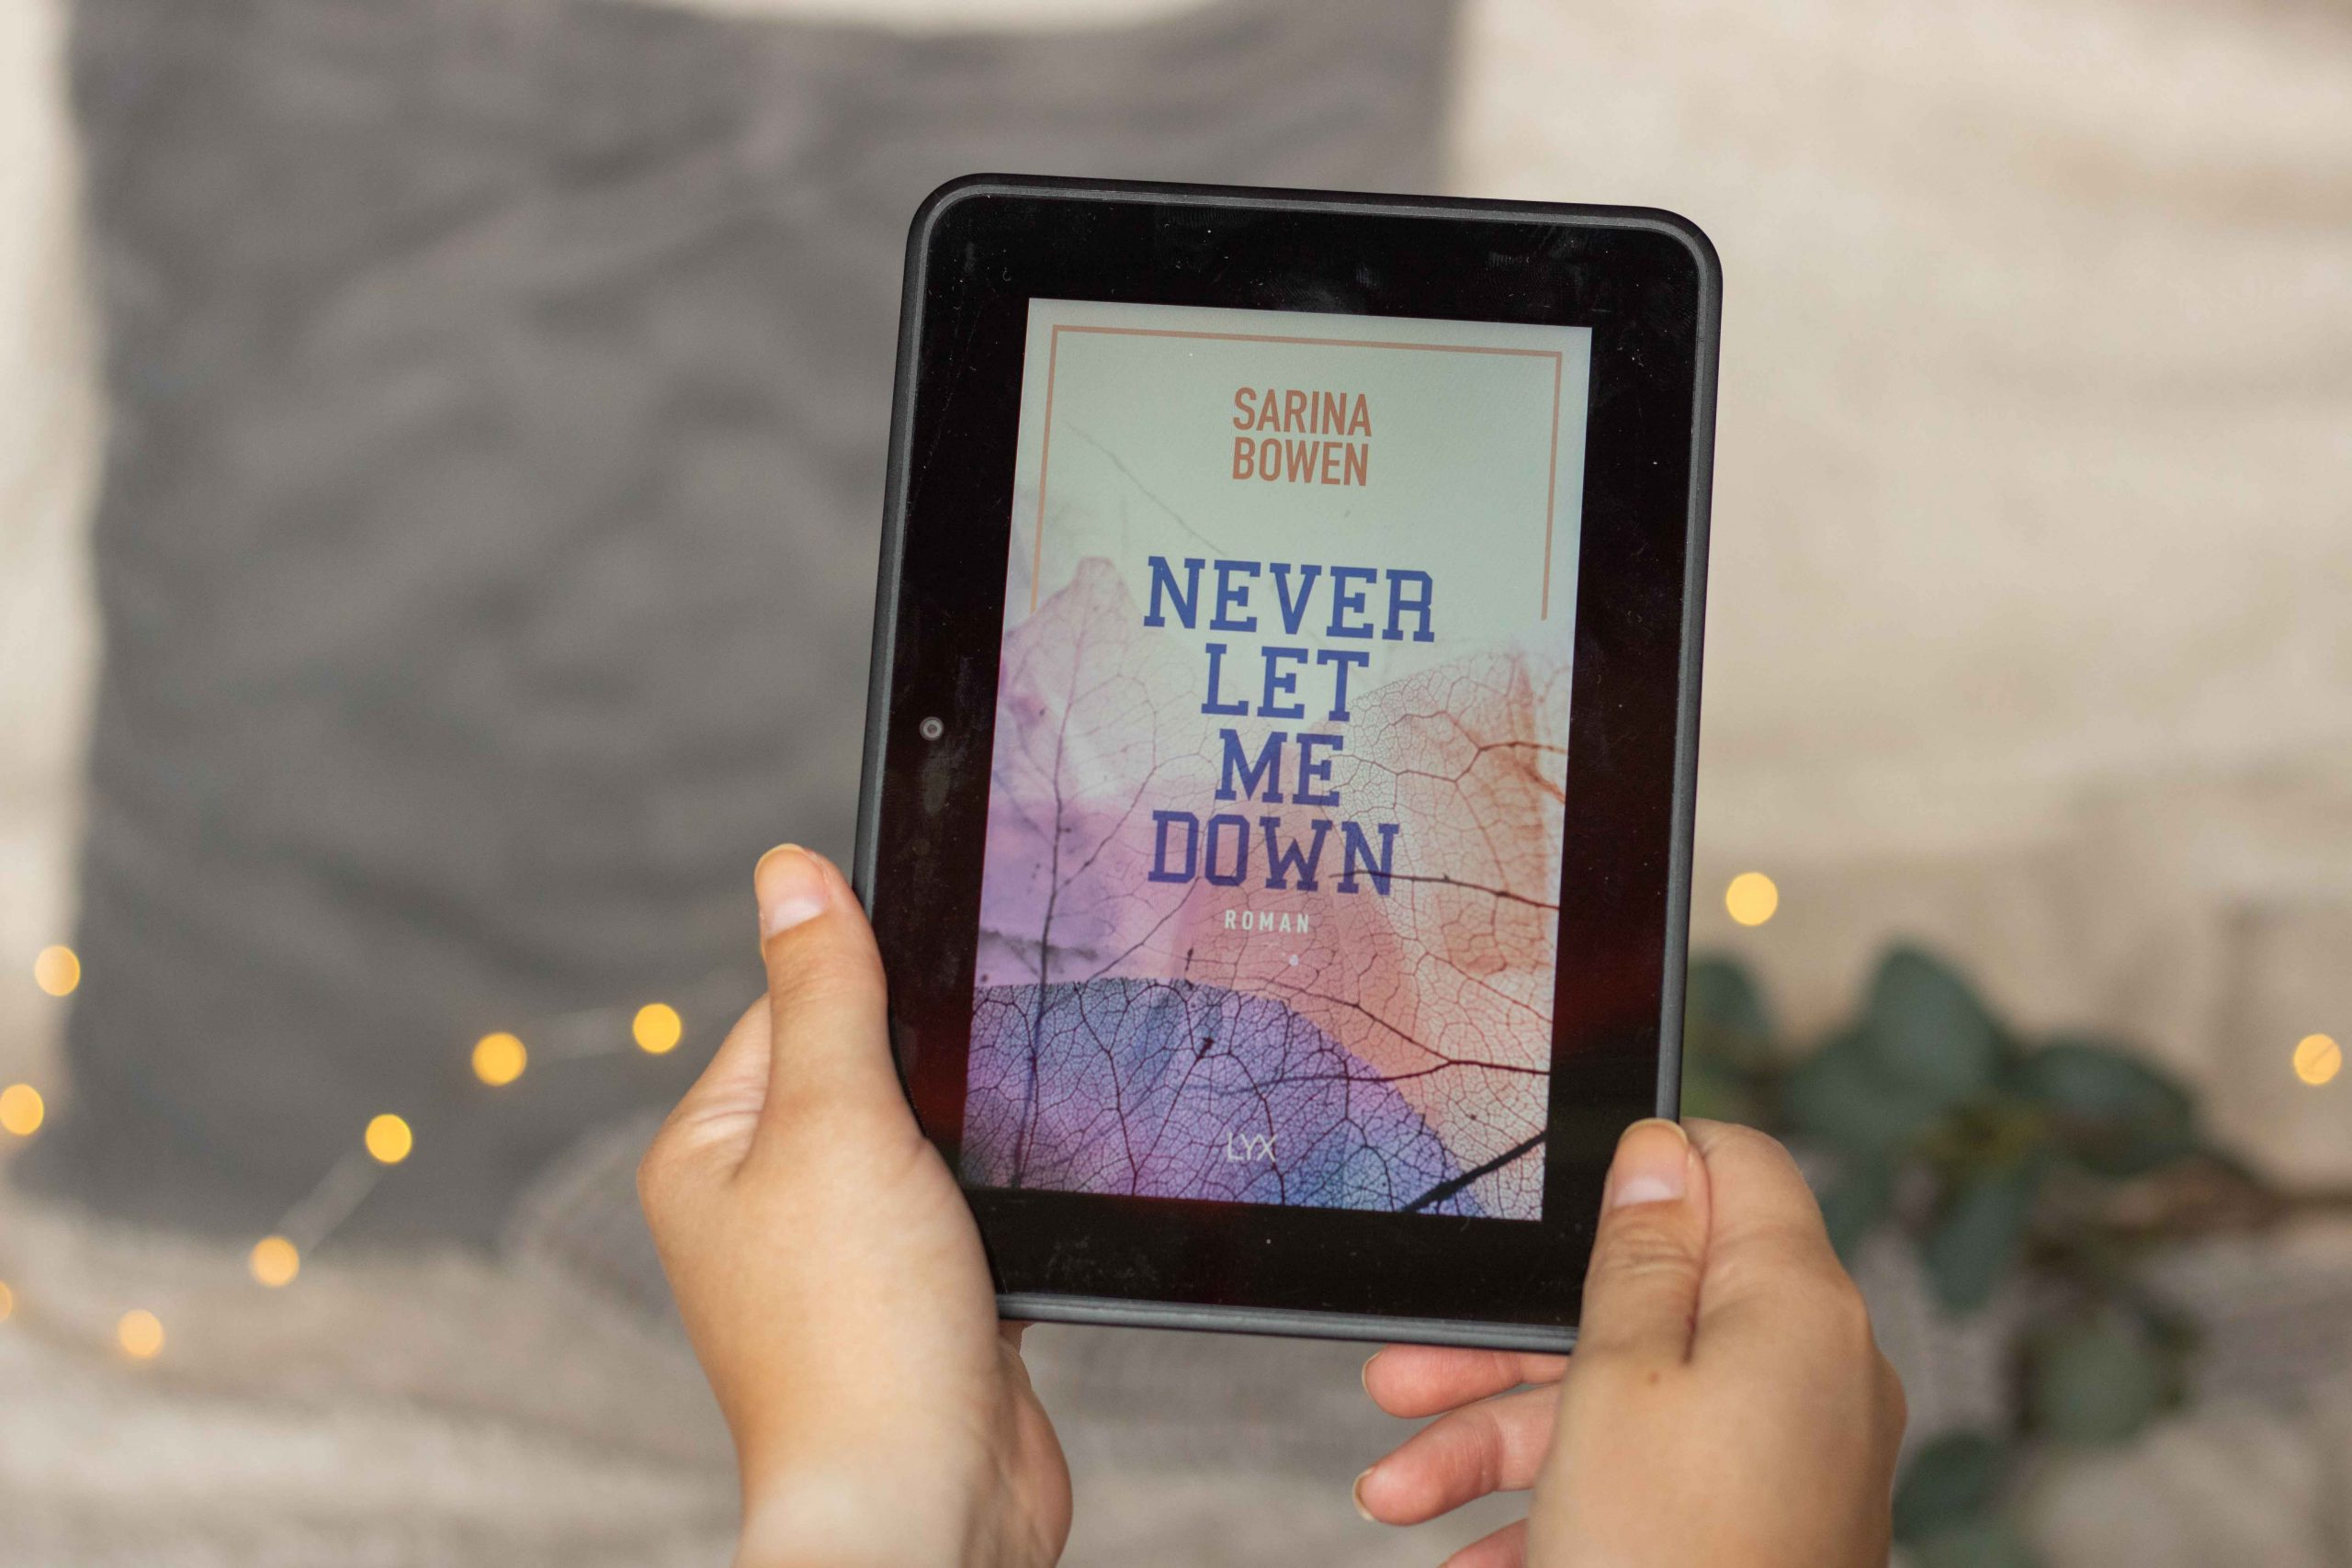 Never let me down | Sarina Bowen